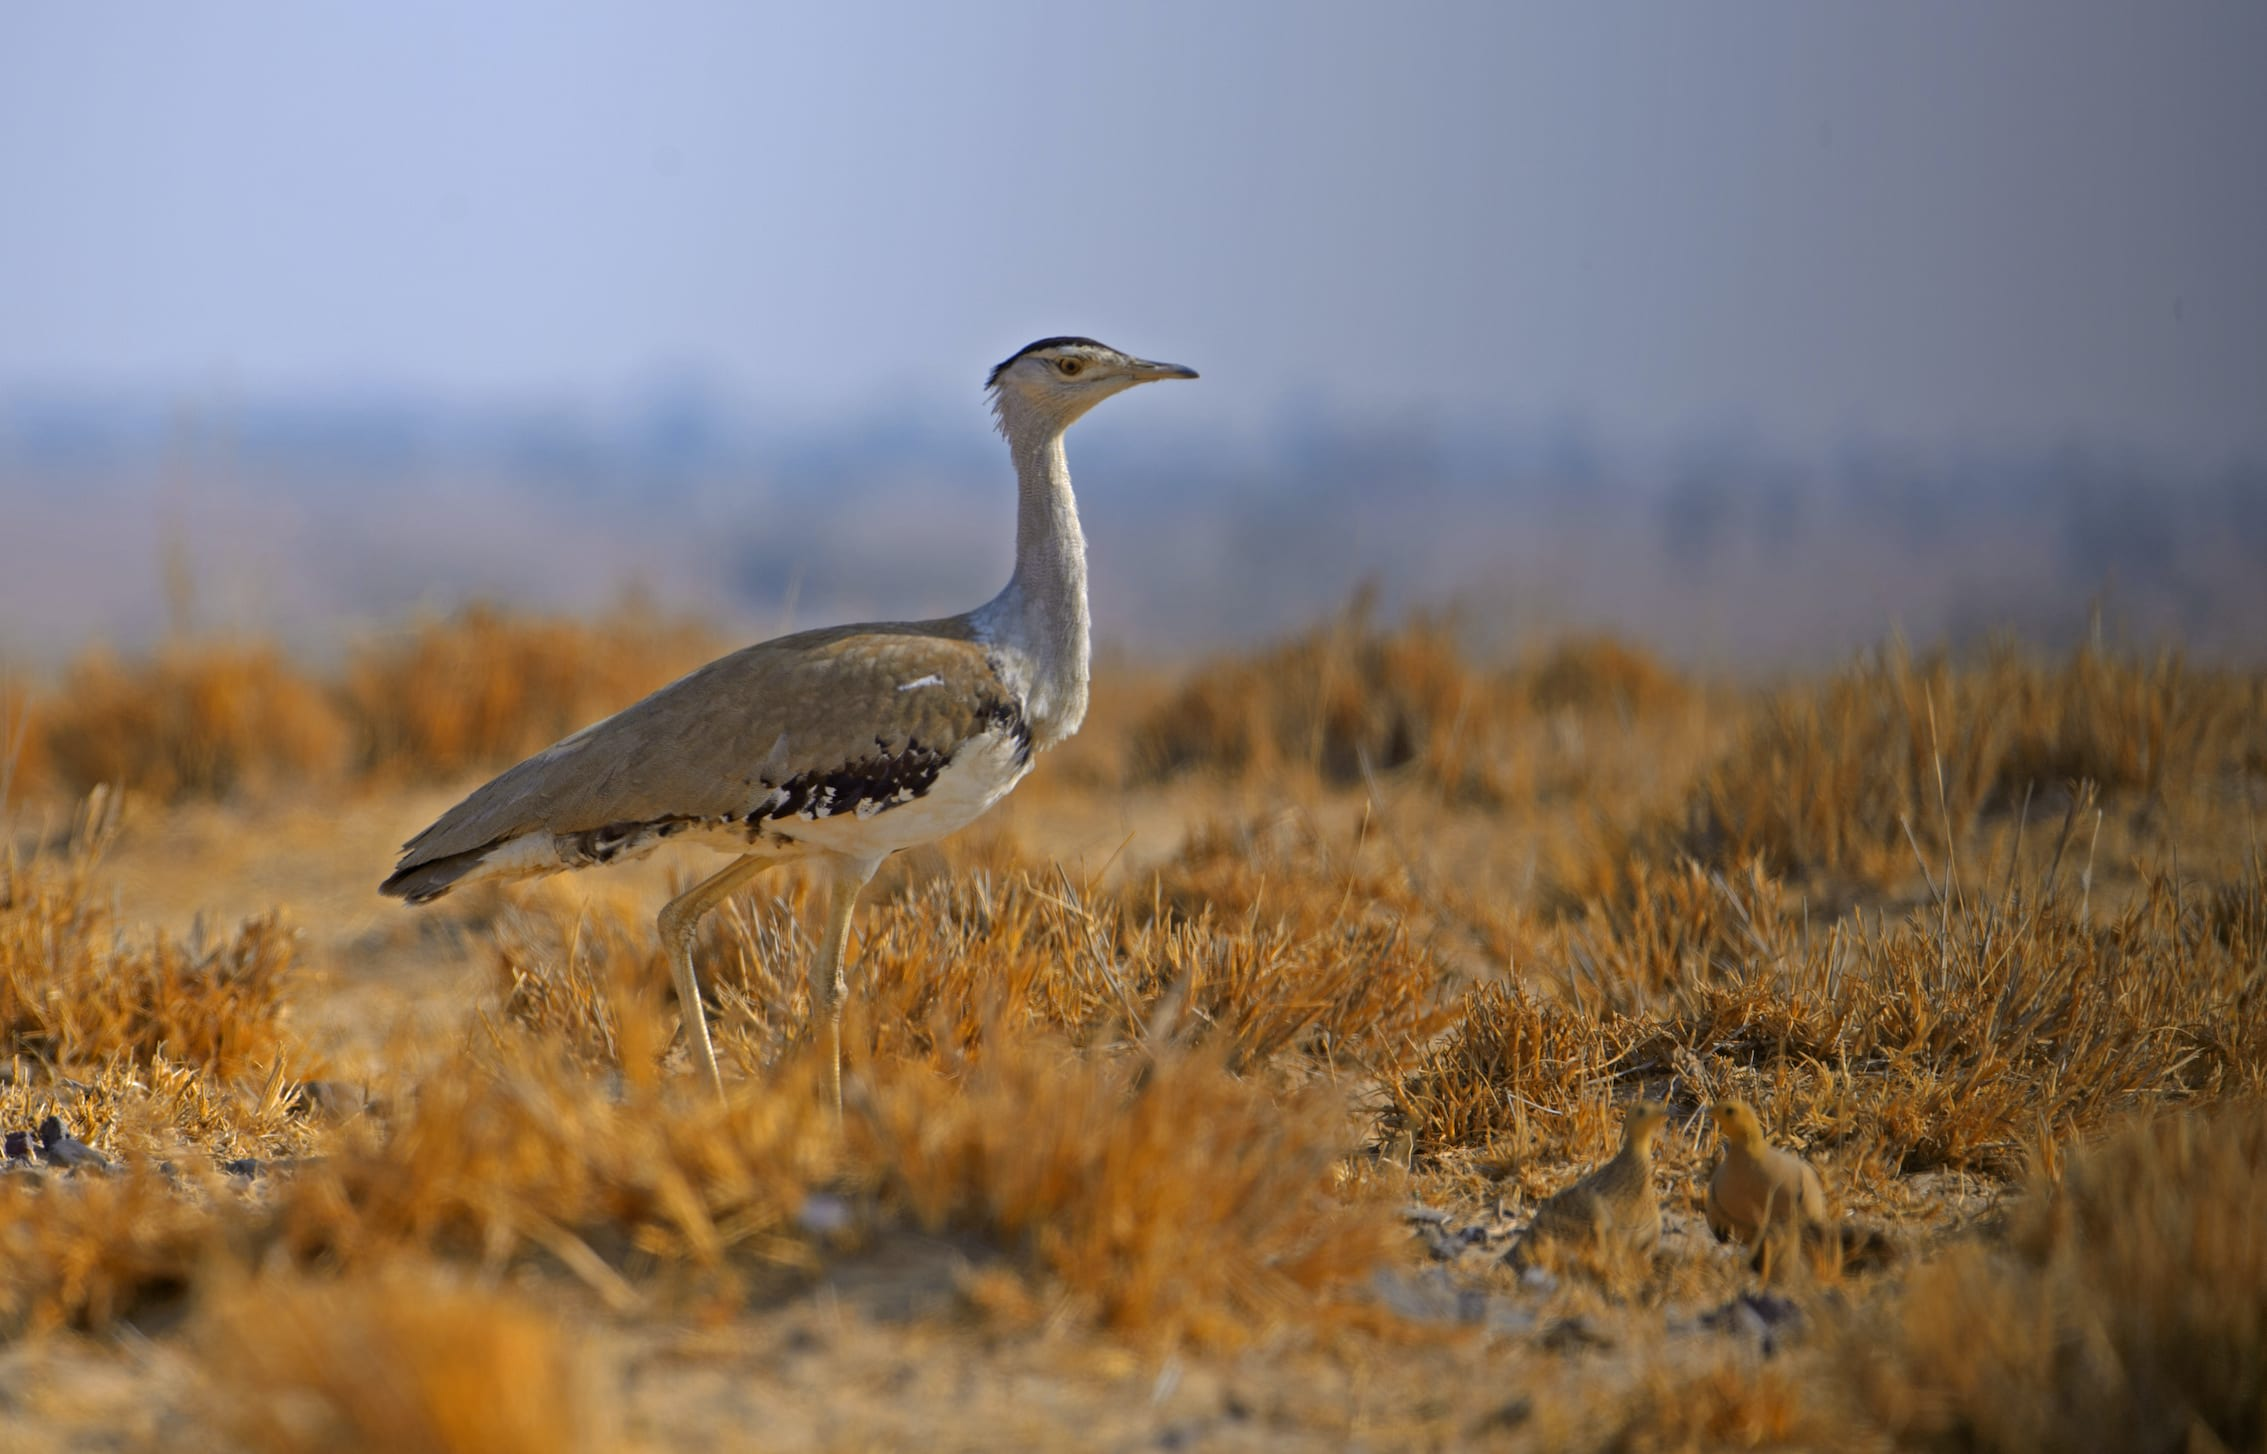 "Great Indian bustards probably live for 15 to 20 years, ""but we do not know for sure, as we do not have good, scientific data on marked birds,"" says Dr Rahmani. Like many species in India, long-term research on the great Indian bustard is wanting, making conservation efforts difficult. Photo: Dhritiman Mukherjee  There are four species of bustards in India: the lesser florican, Bengal florican, MacQueen's bustard, and the great Indian bustard (Ardeotis nigriceps), which inhabits the grasslands and desert regions of the Thar Desert of Rajasthan, with smaller populations in Kutch, Gujarat and parts of the Deccan Plateau. The birds feed on ""insects, lizards, small snakes, and some green vegetation,"" says Dr Rahmani. Cover photo: Devesh Gadhavi"